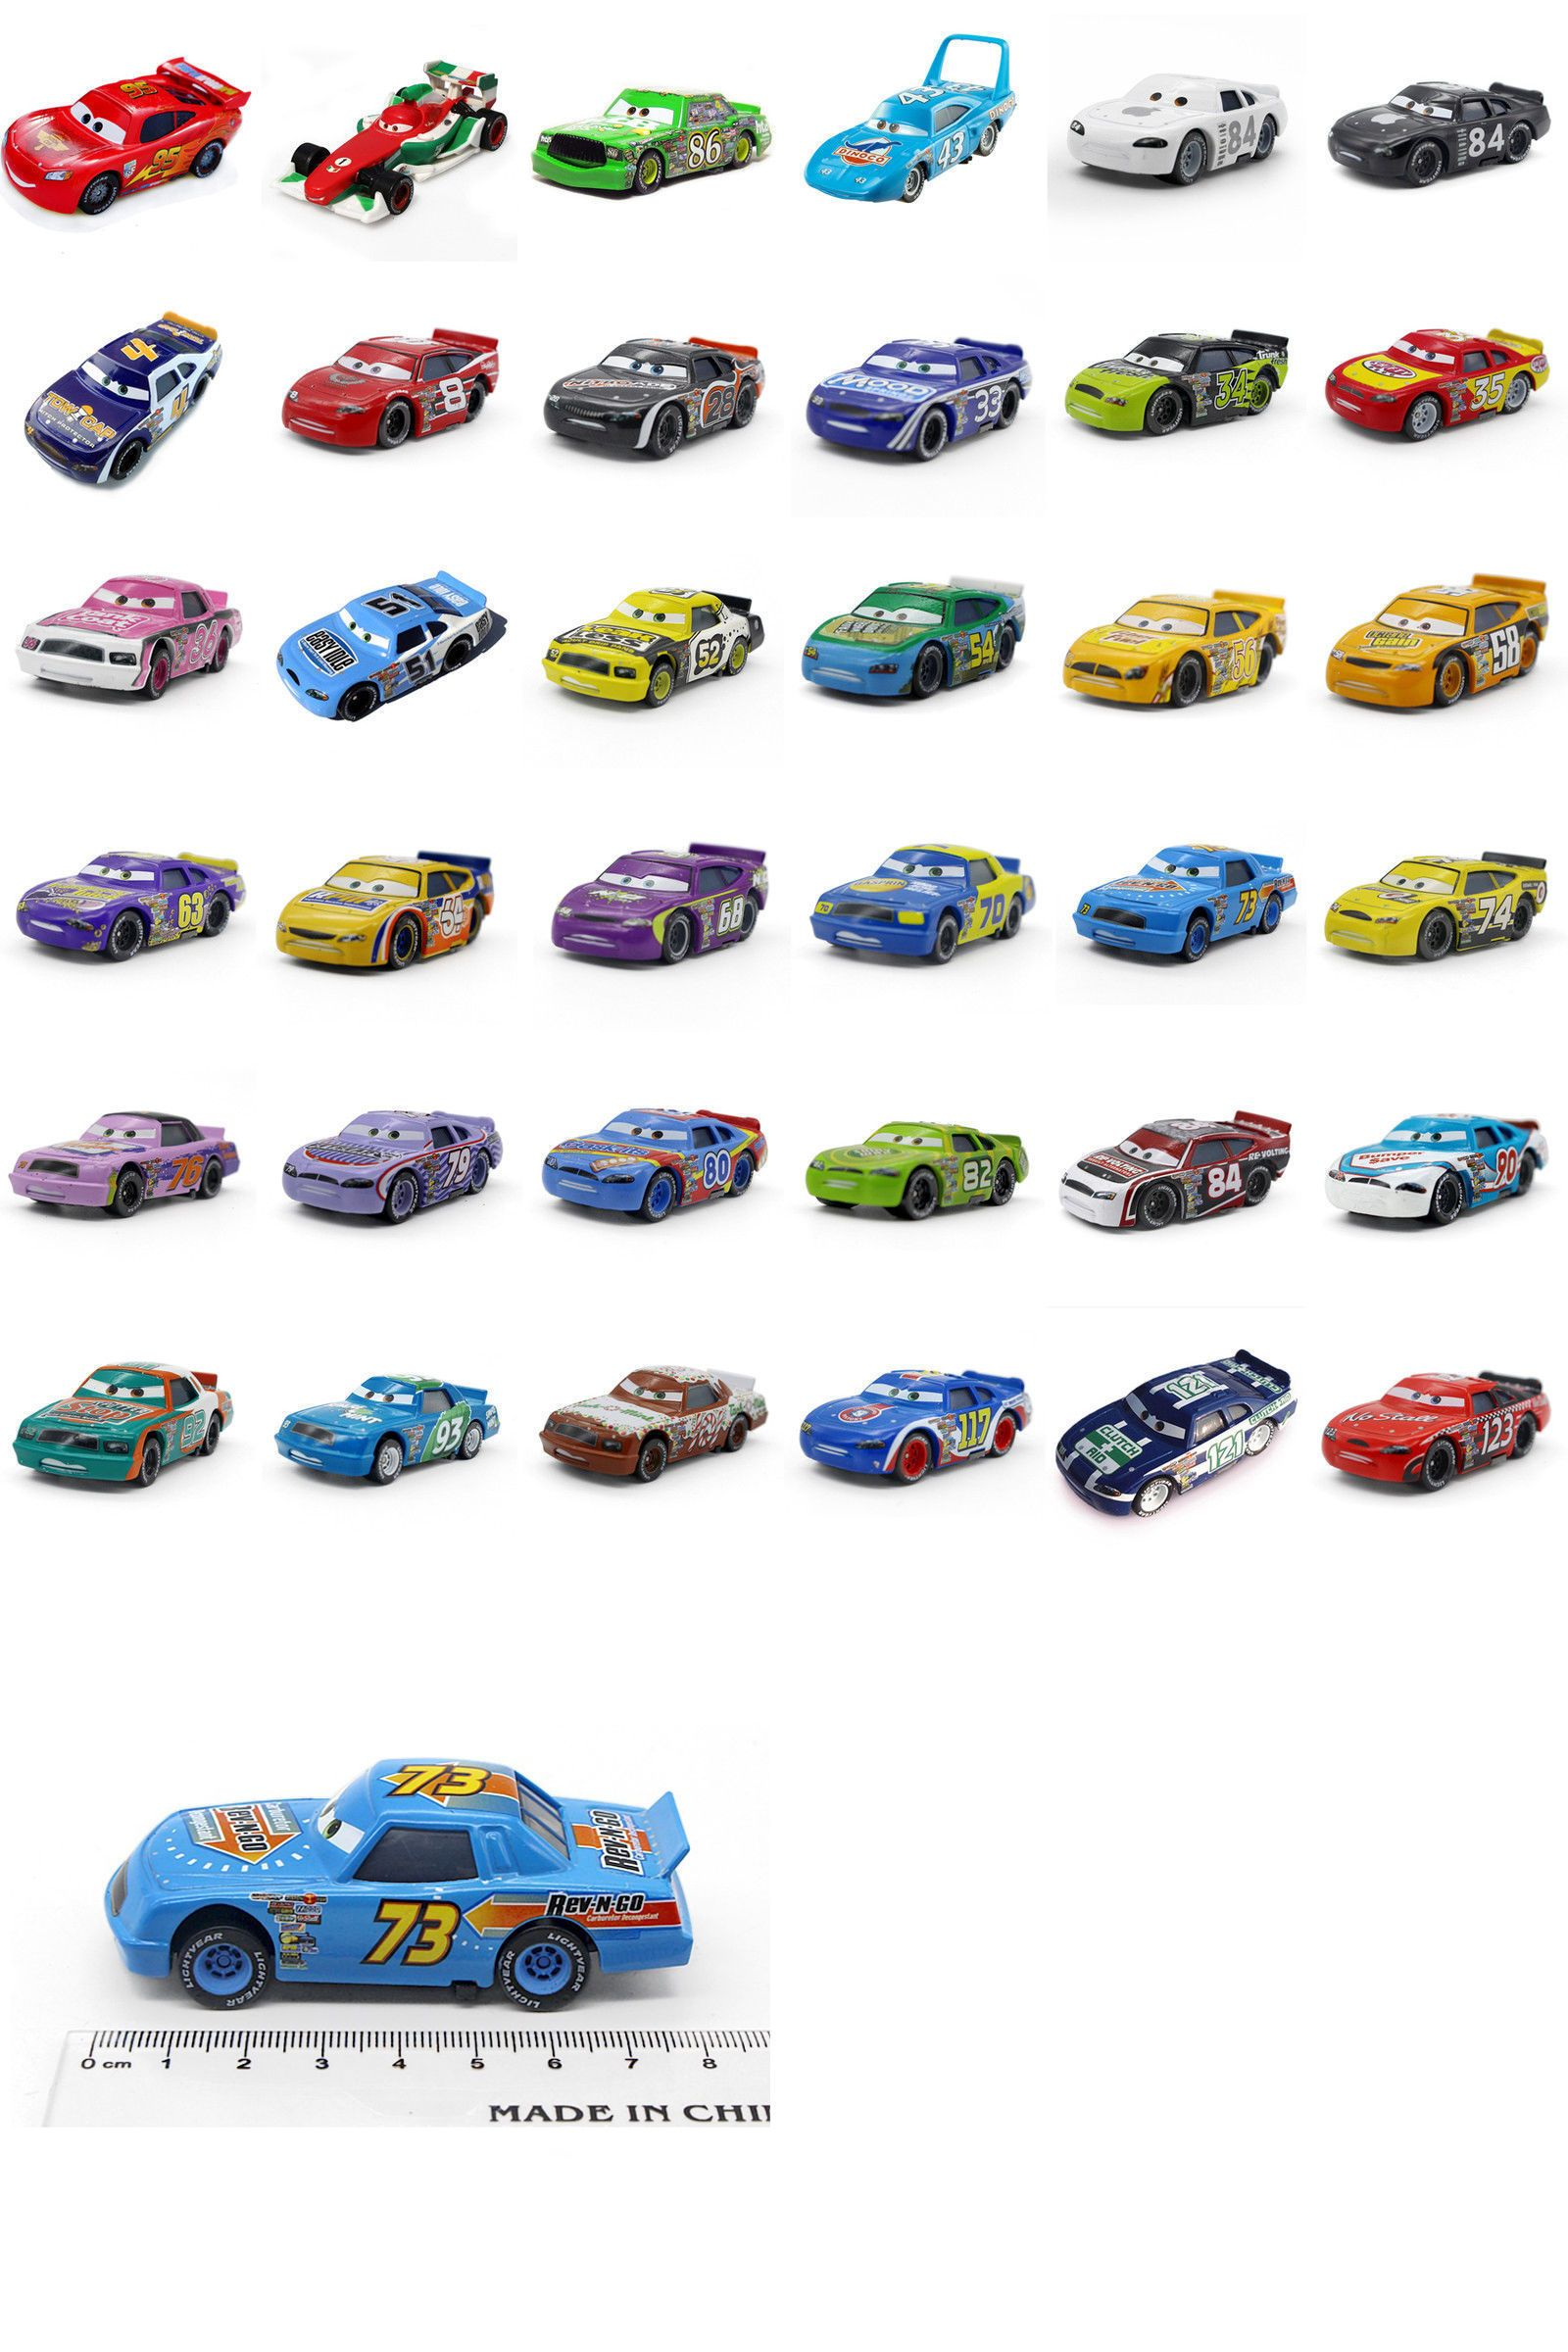 Cars 2 Toys Speed Racer Lightning Mcqueen The King Metal Car Toys 1 55 Loose New Lightning Mcqueen Hot Wheels Display Toy Car